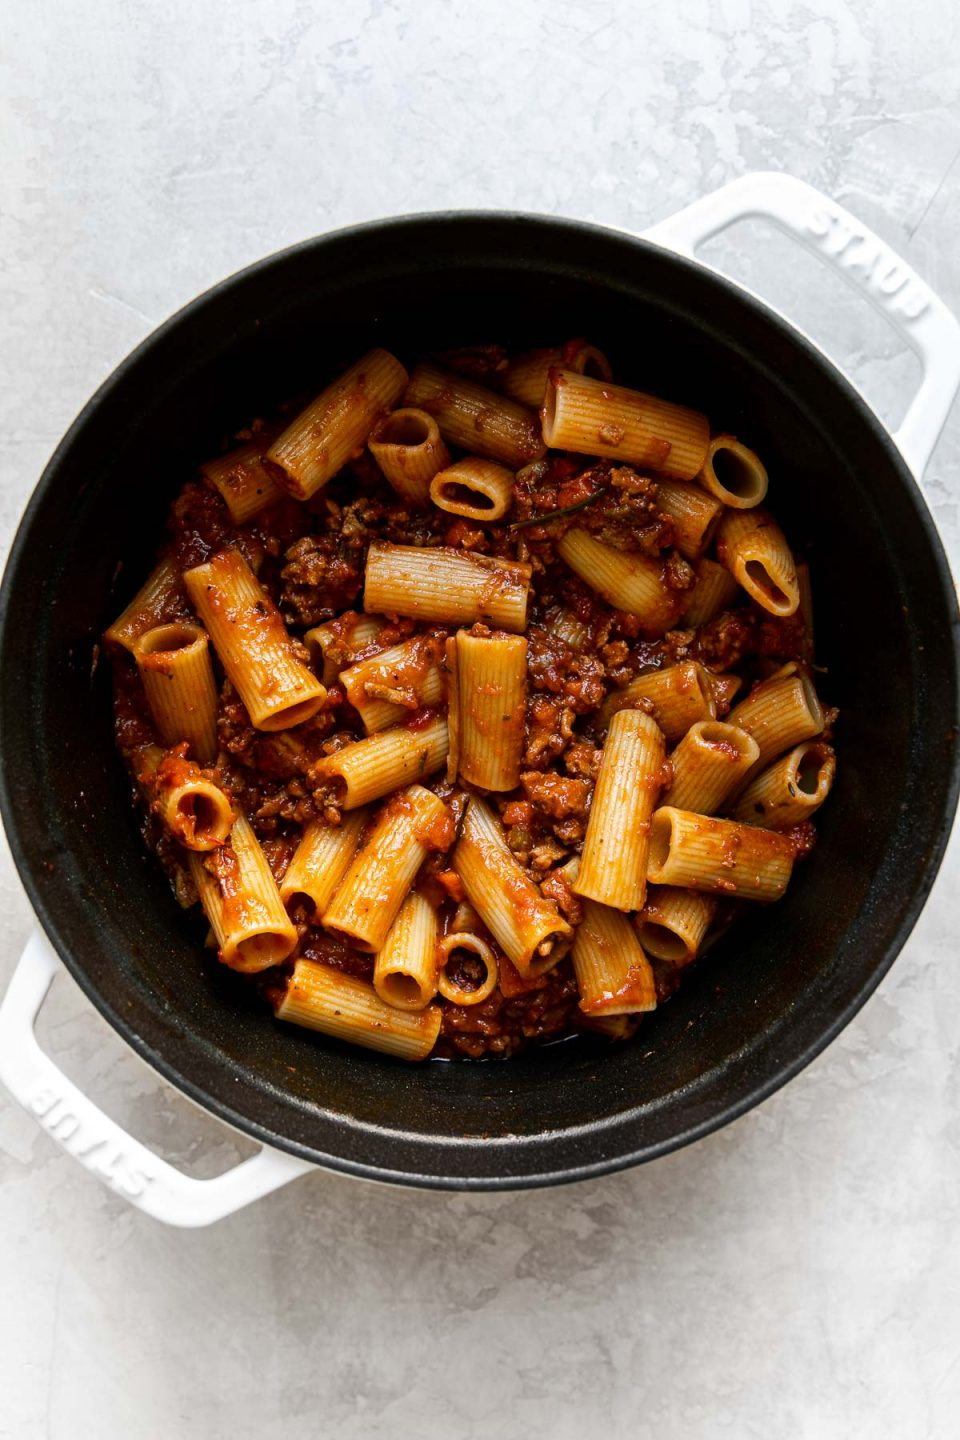 An overhead shot of a large pot filled with weeknight bolognese sauce mixed with rigatoni pasta noodles. The pot sits atop a creamy white surface.